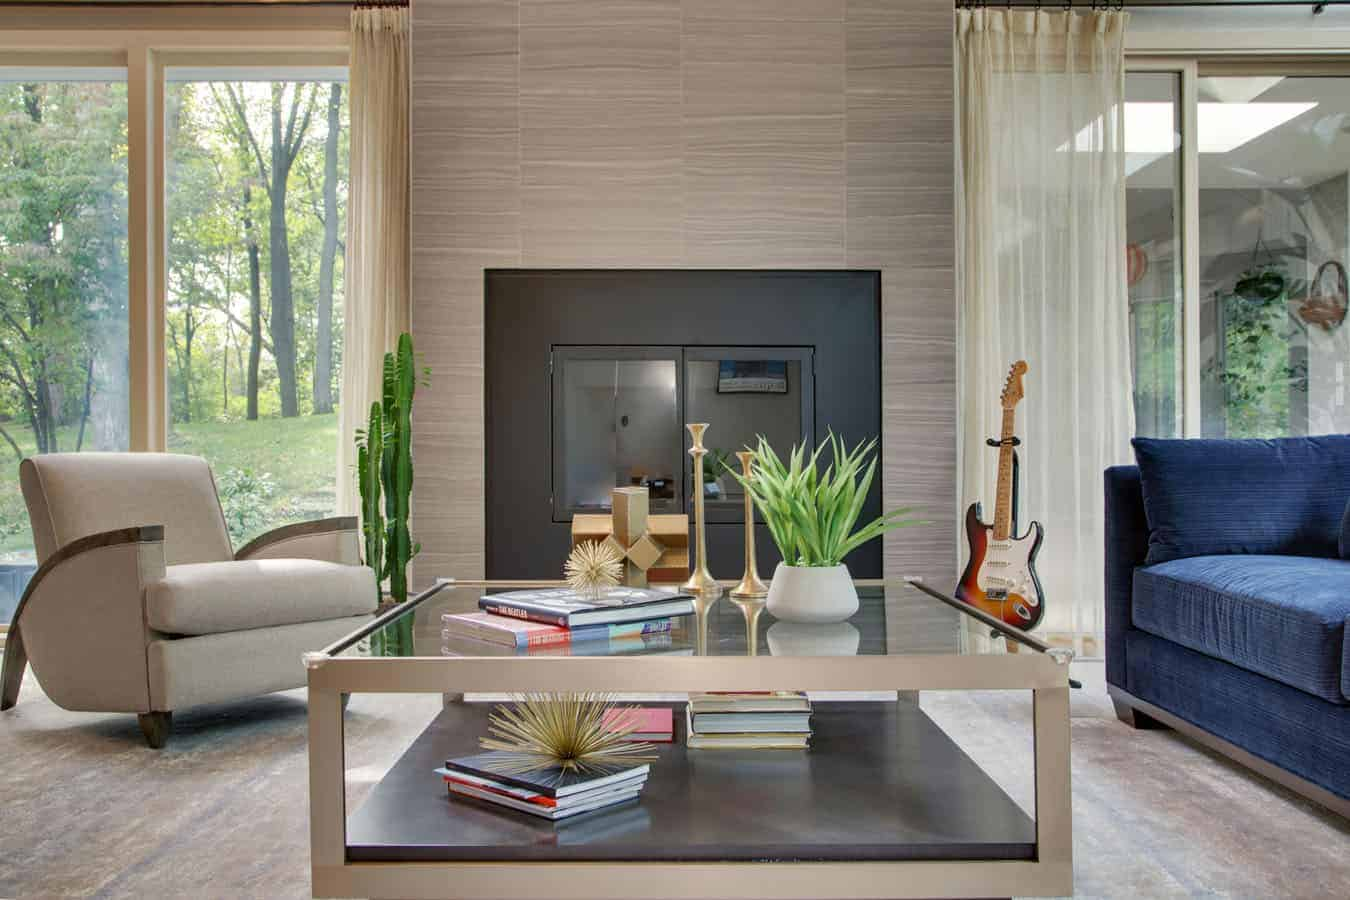 Bauman living room interior design LI